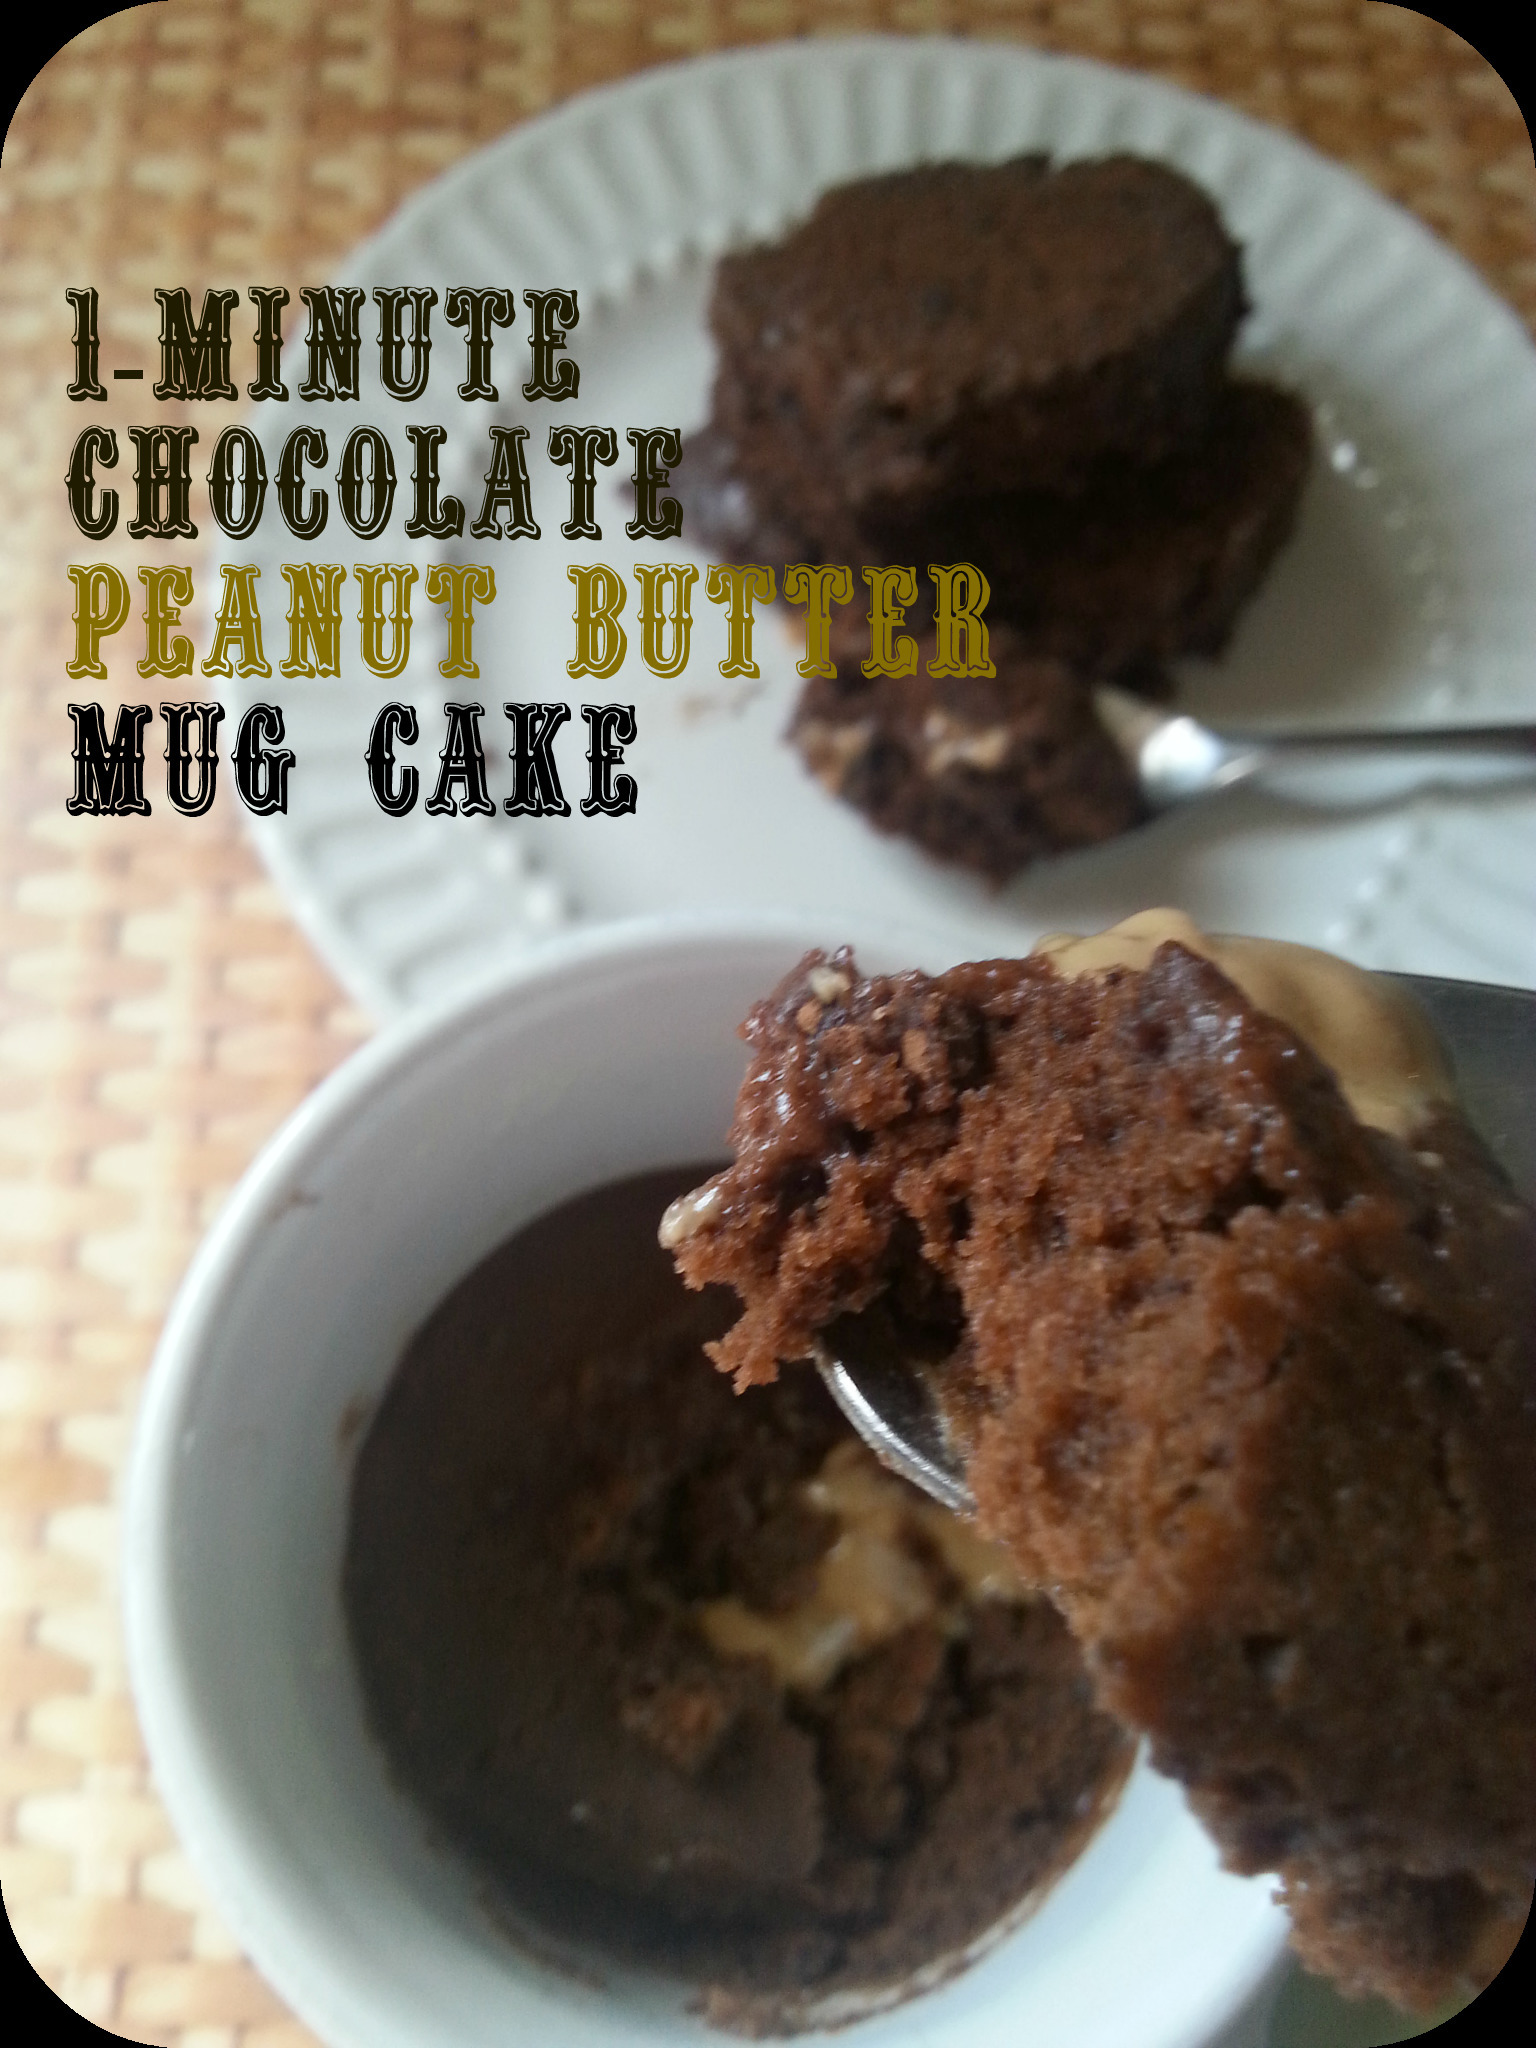 1 - Minute Chocolate Peanut Butter Mug Cake